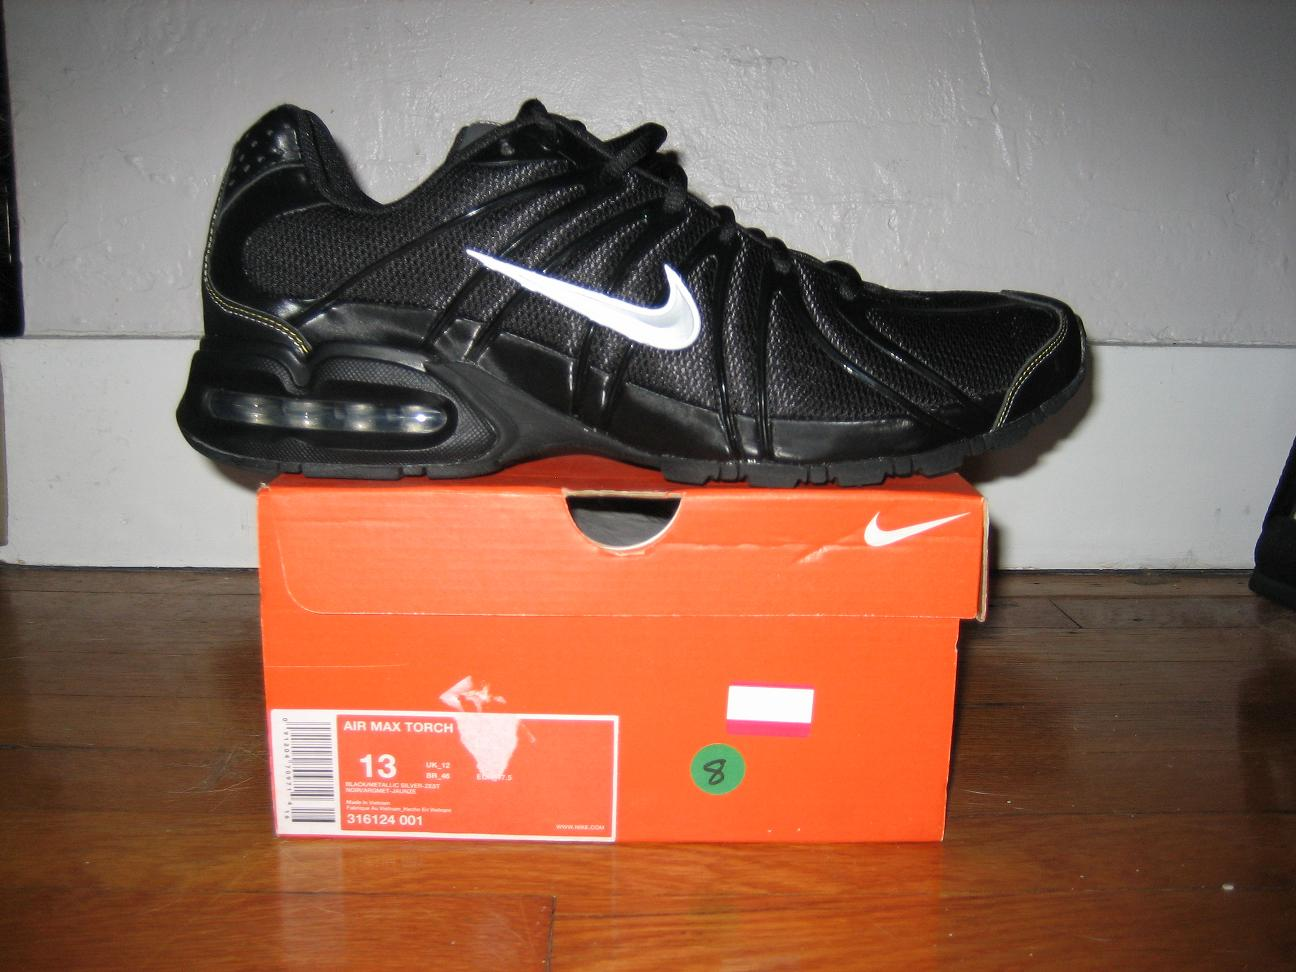 Nike air max men's Black shoes 316124-001 Size 10